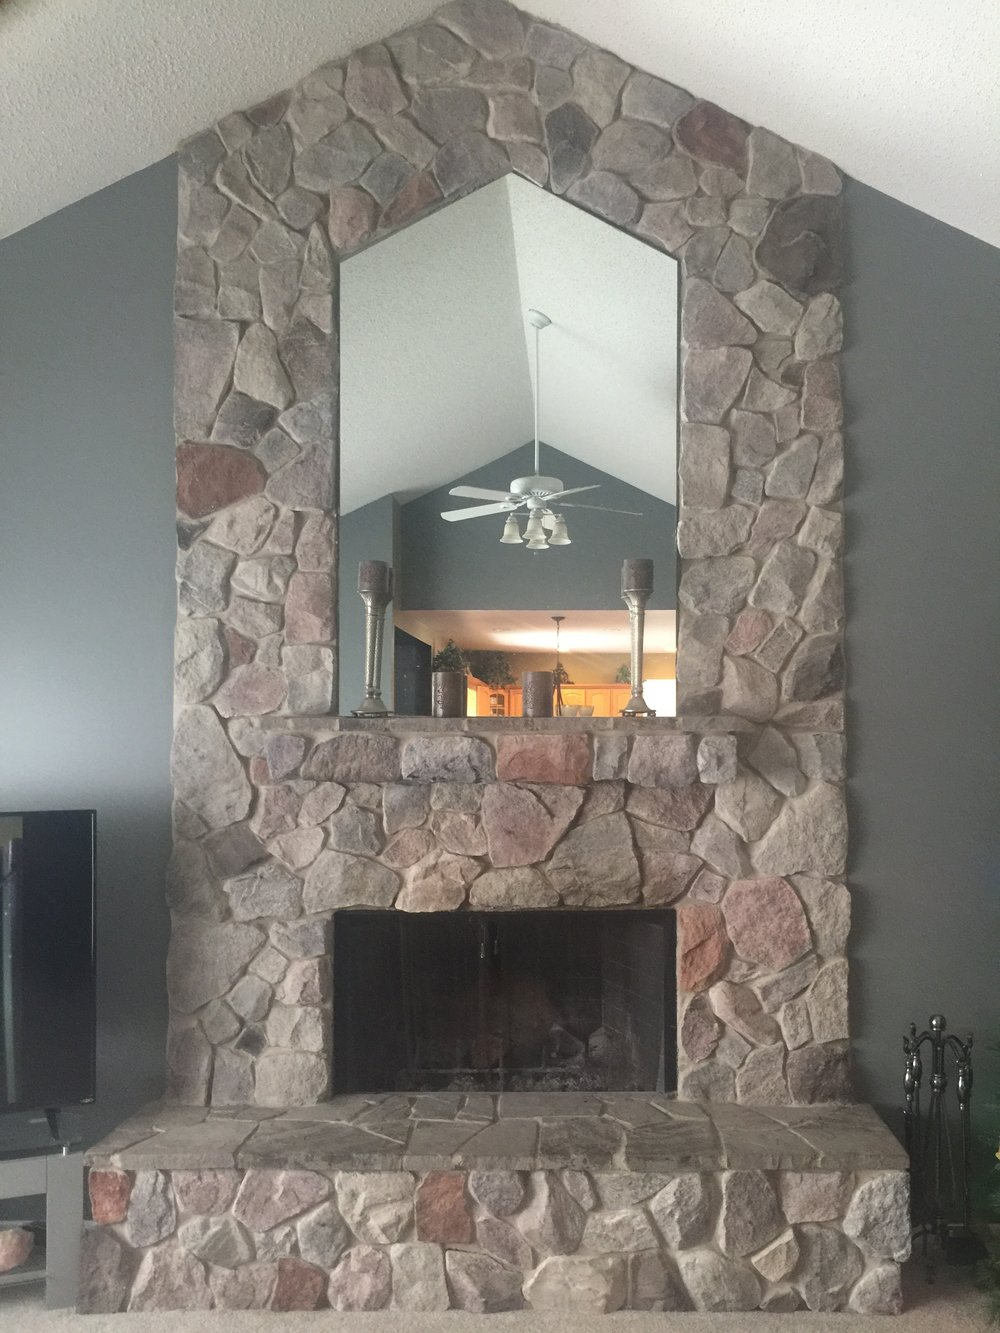 Custom interior fireplace stonework in Genesee County, MI